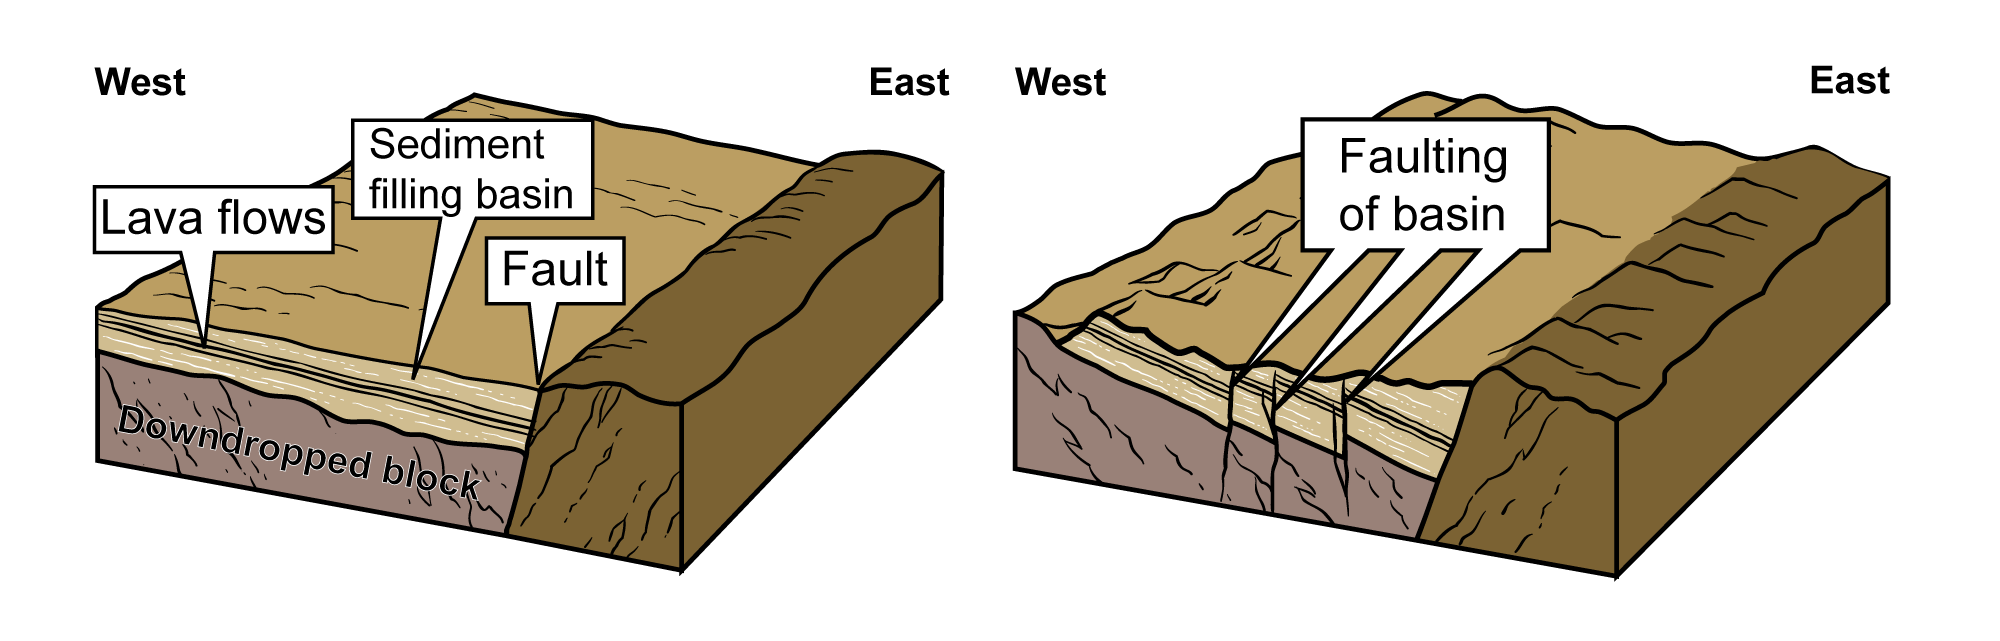 Images showing the formation of rift basins in the northeastern U.S. during the Mesozoic.